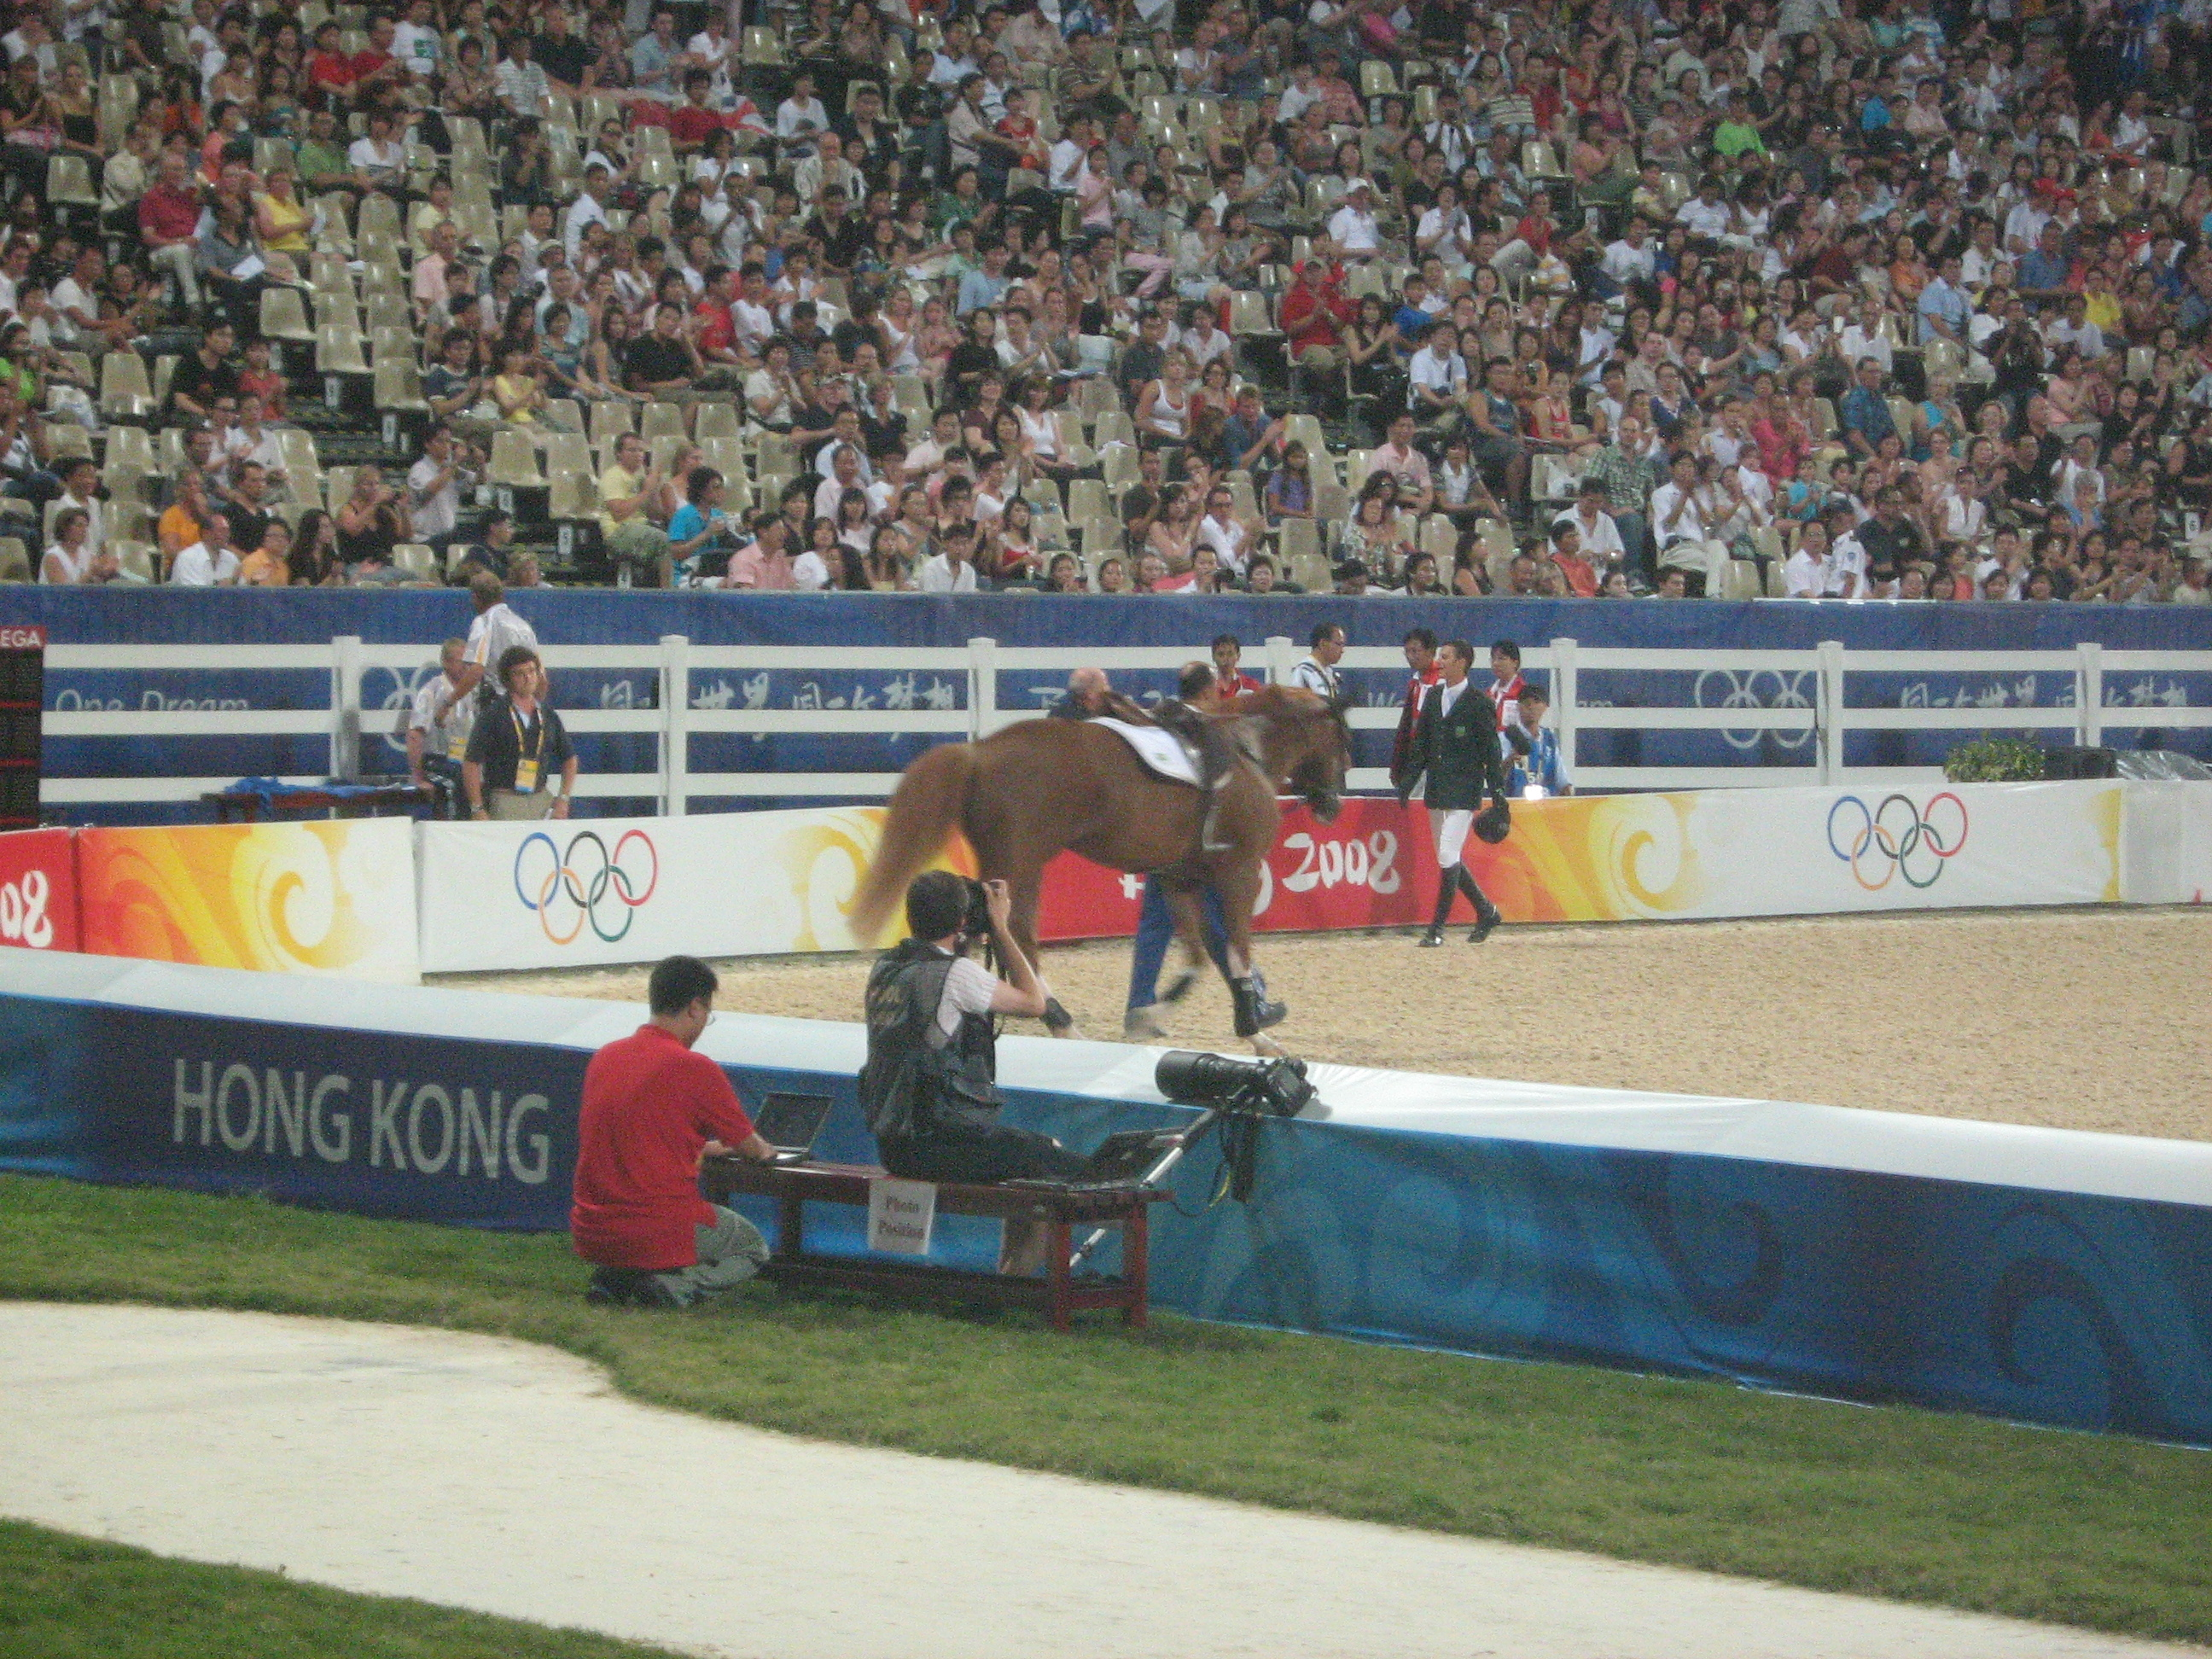 ....although they looked great, they met their fate at the 2nd last fence (the massive oxer) where the horse fell.